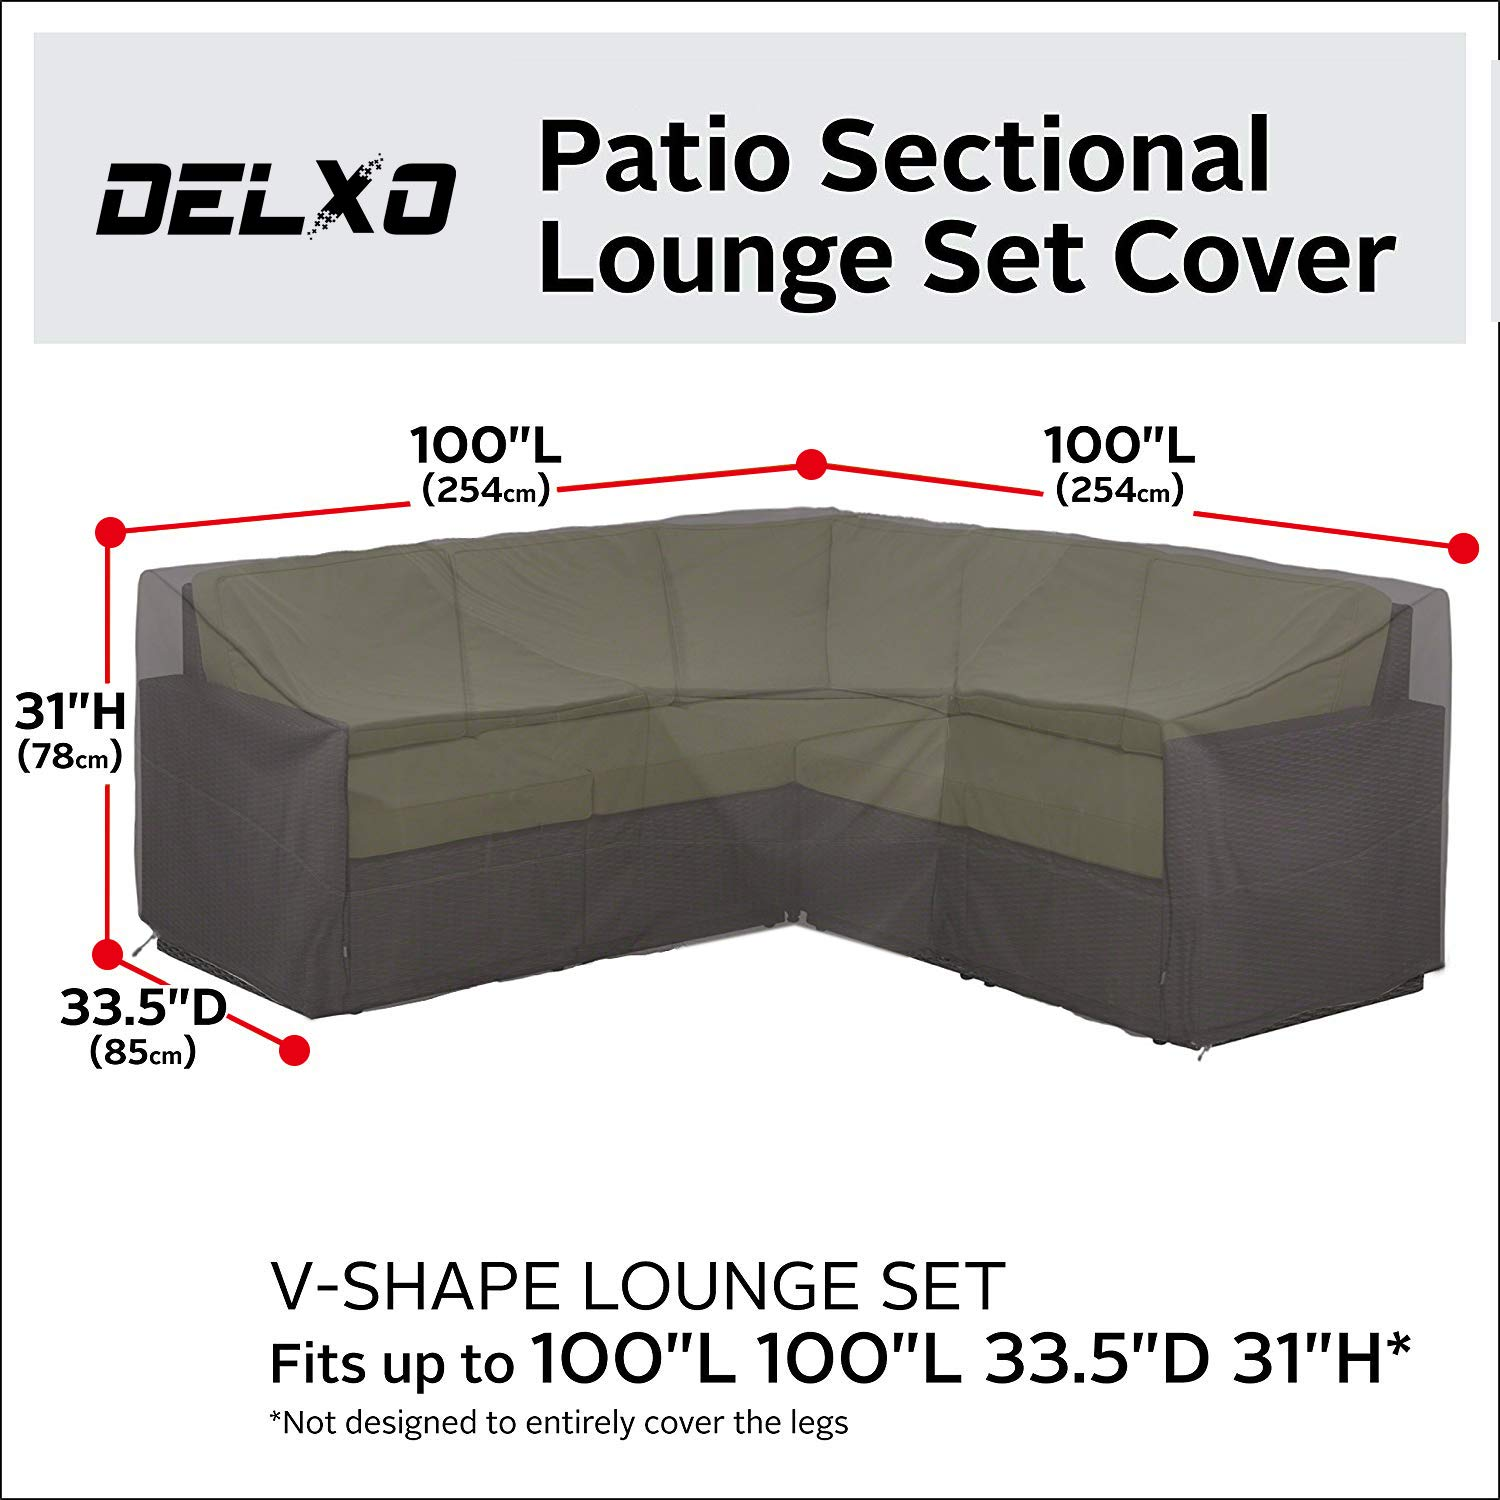 Delxo Ravenna Sectional Sofa Cover Waterproof - 100% UV & Weather Resistant PVC Coated, V-Shaped by Delxo (Image #2)